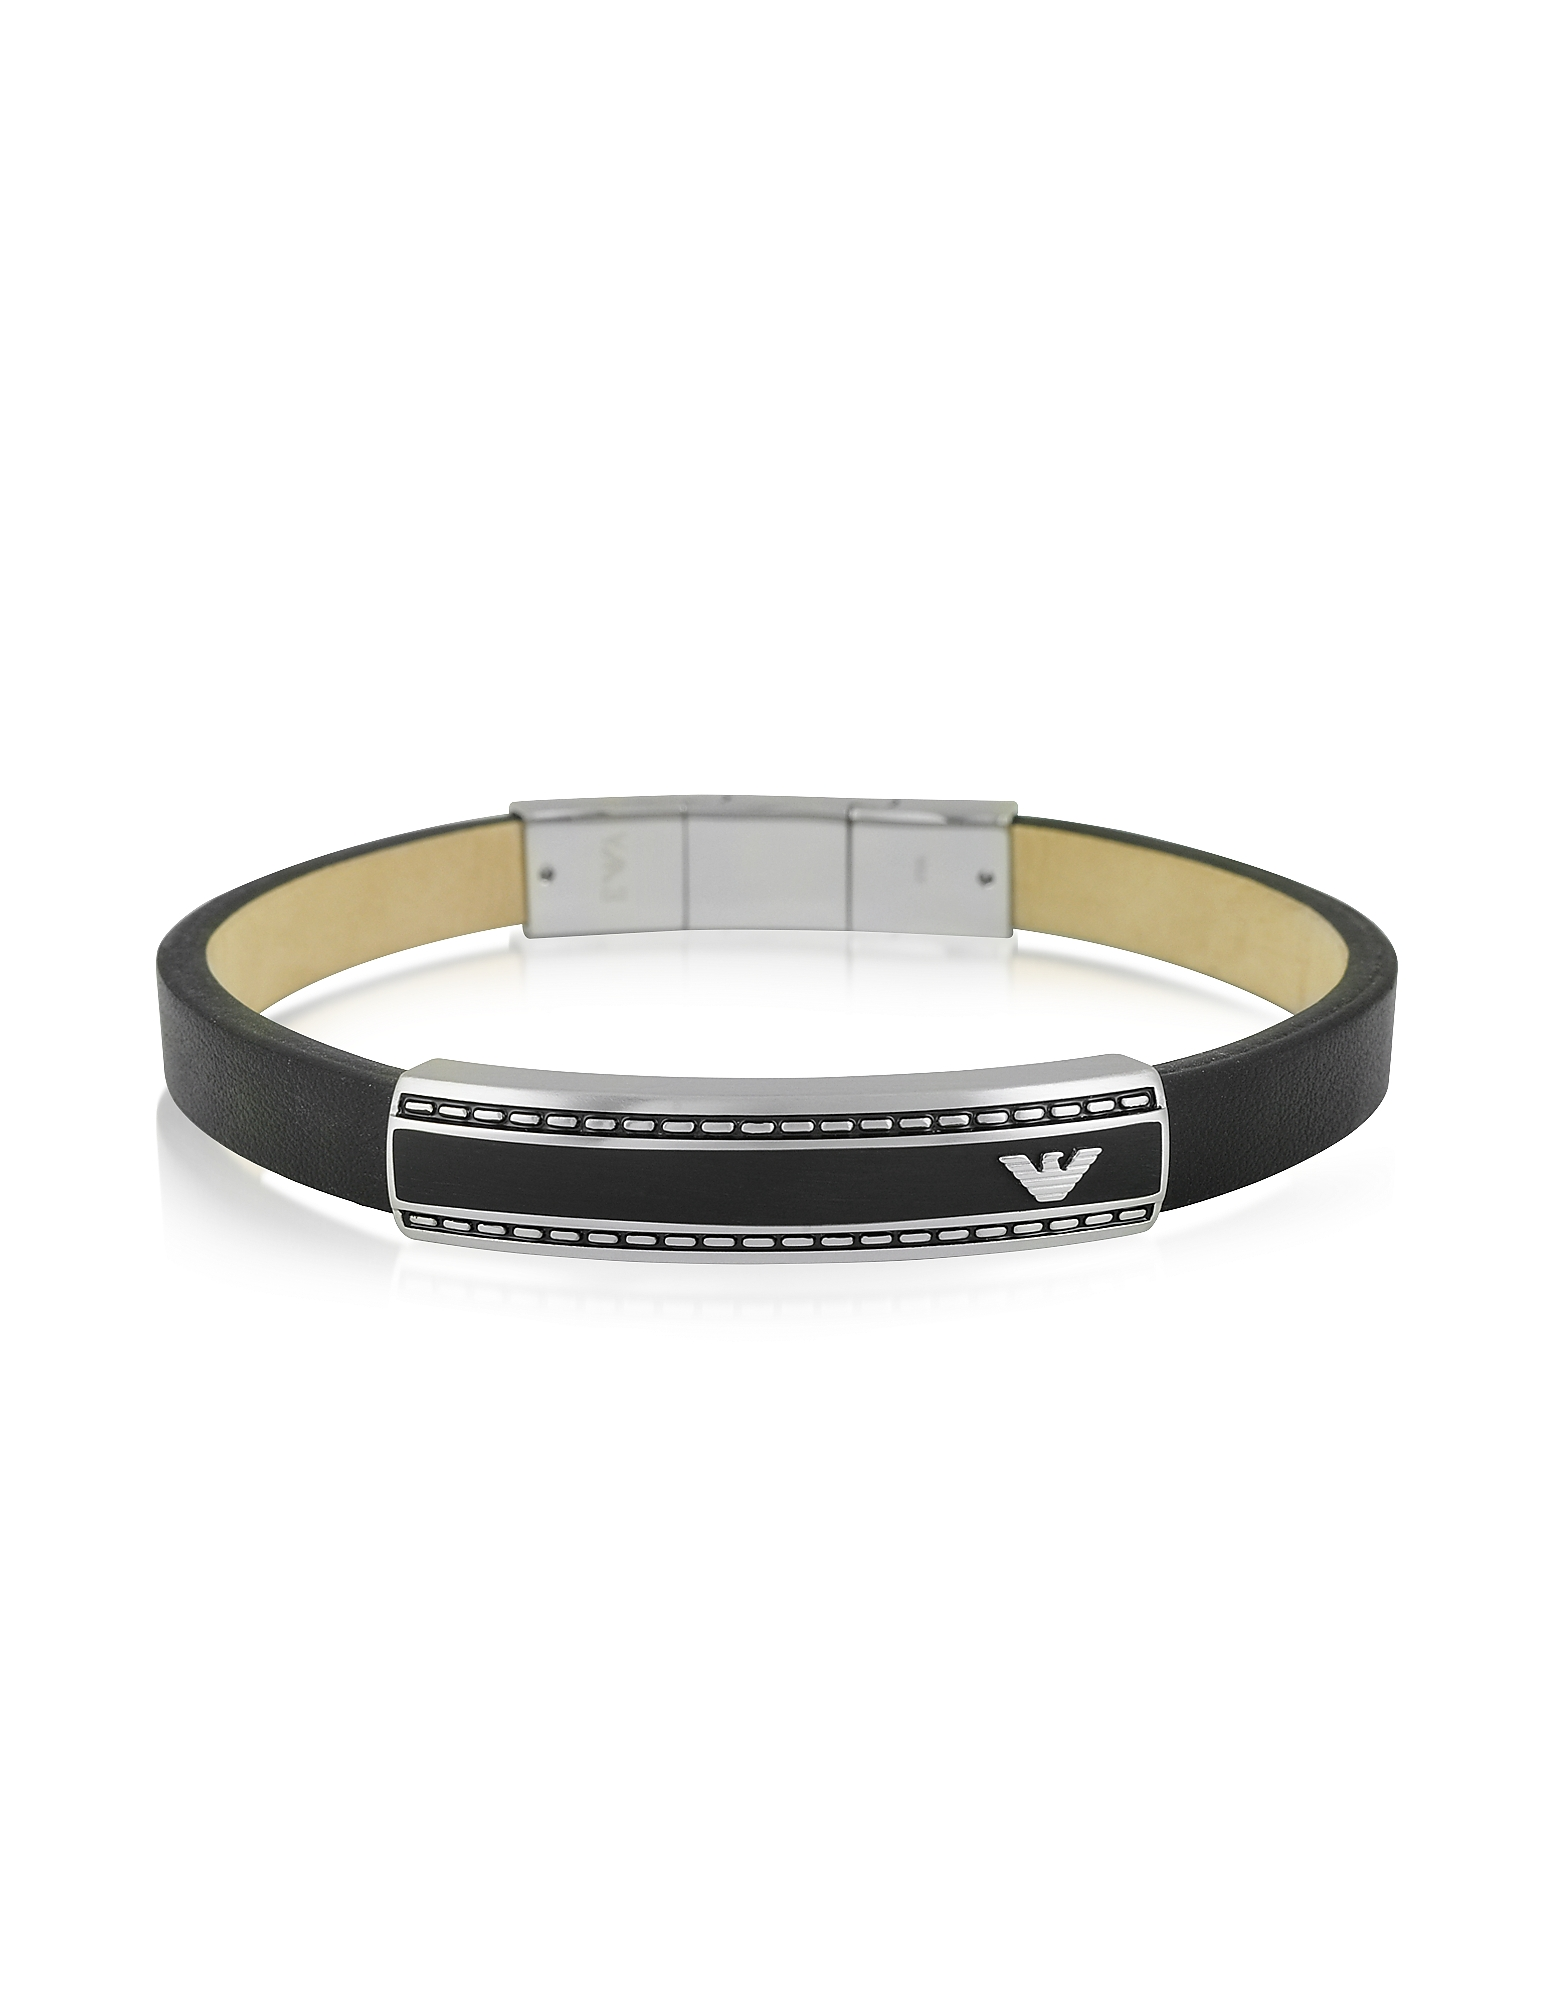 Stainless Steel Signature Men's Bracelet от Forzieri.com INT